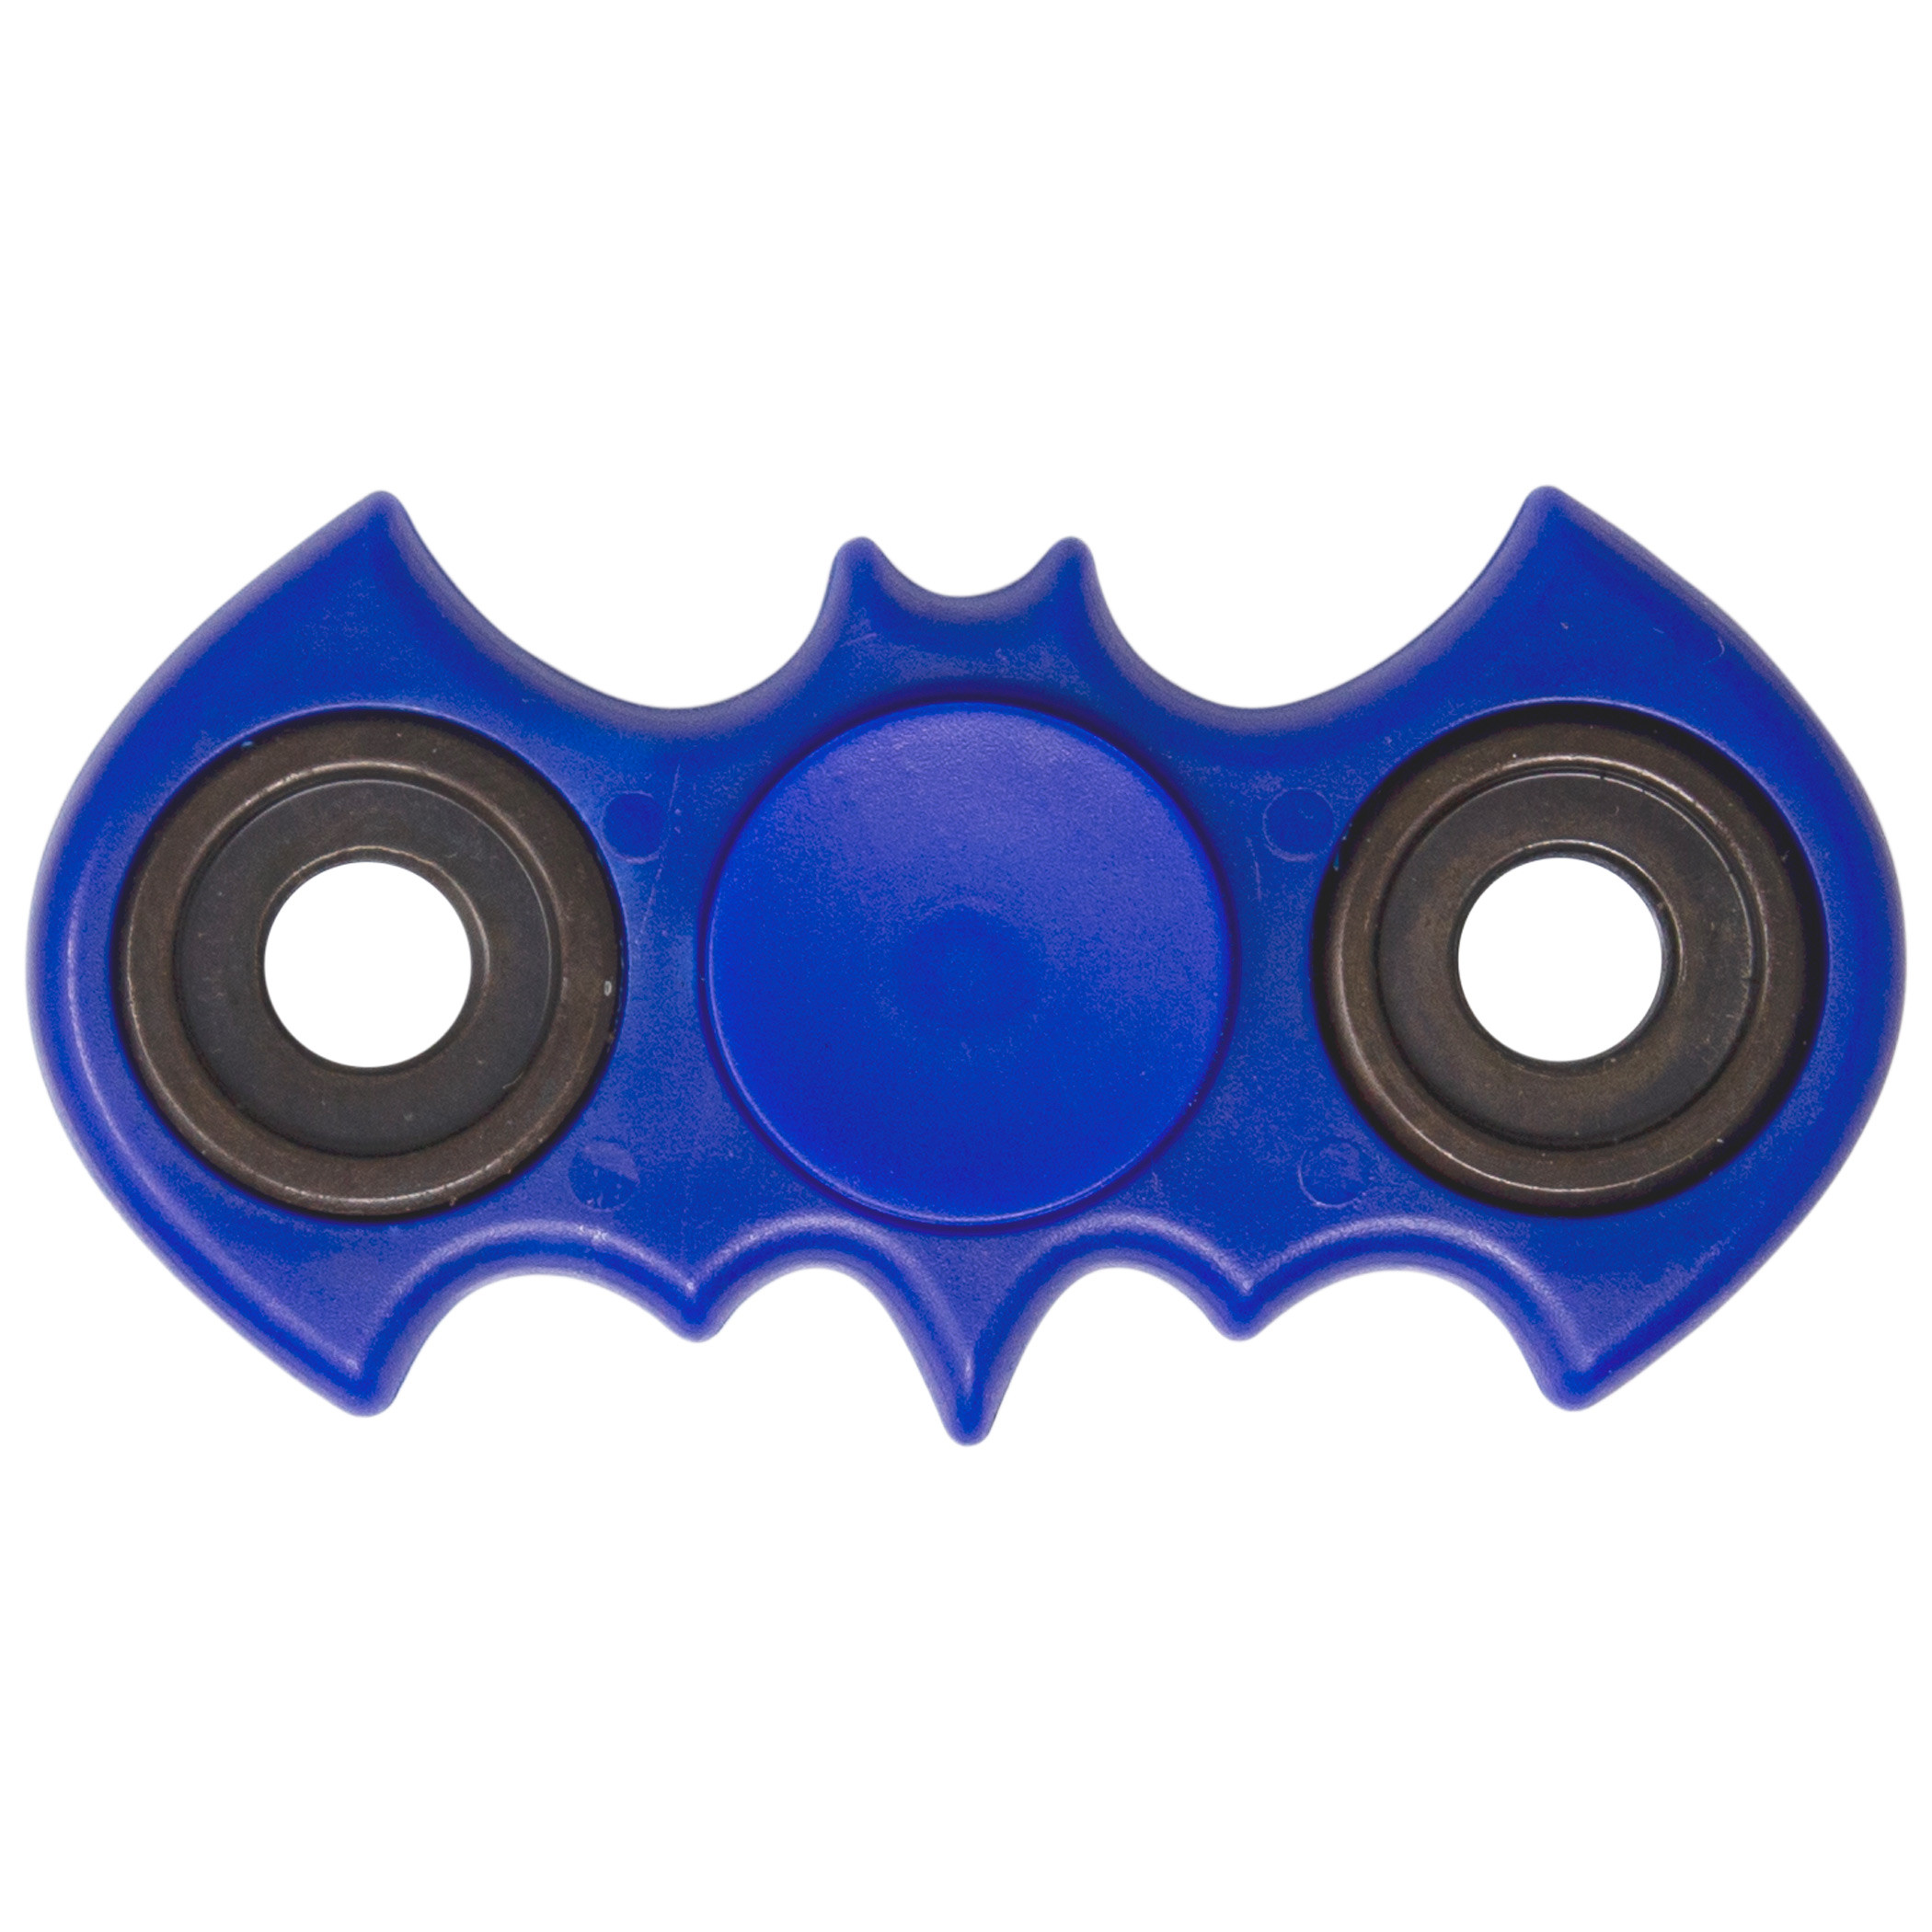 Batman Symbol Shaped Blue Fidget Spinner